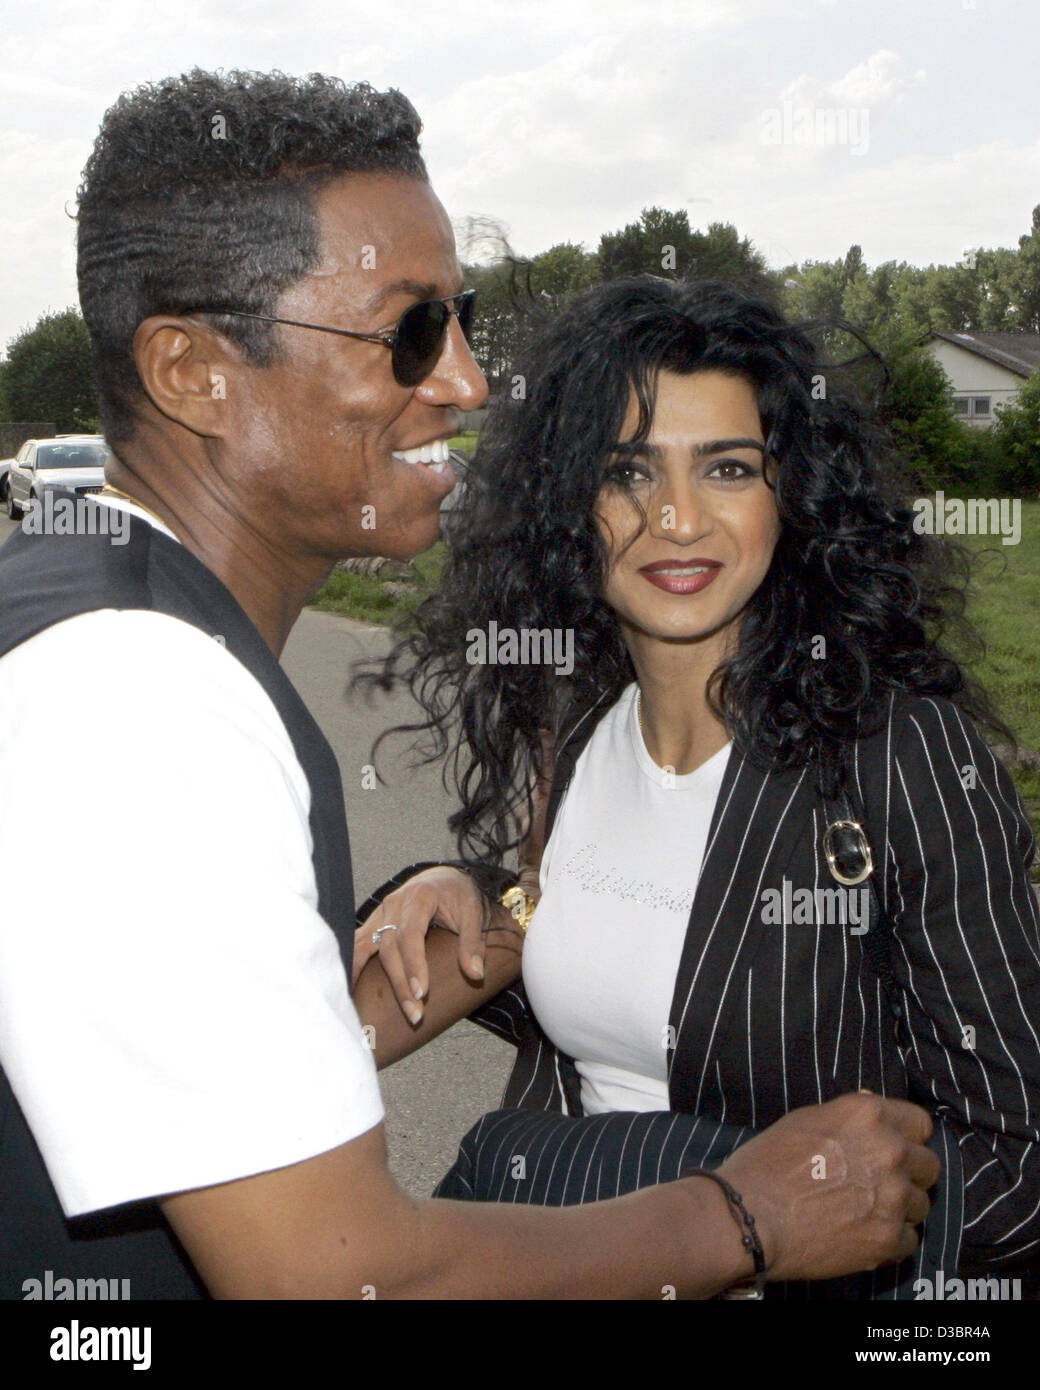 (dpa) - Jermaine Jackson jokes with his girl-friend Halima during their visit to the German 'Big Brother' - Stock Image